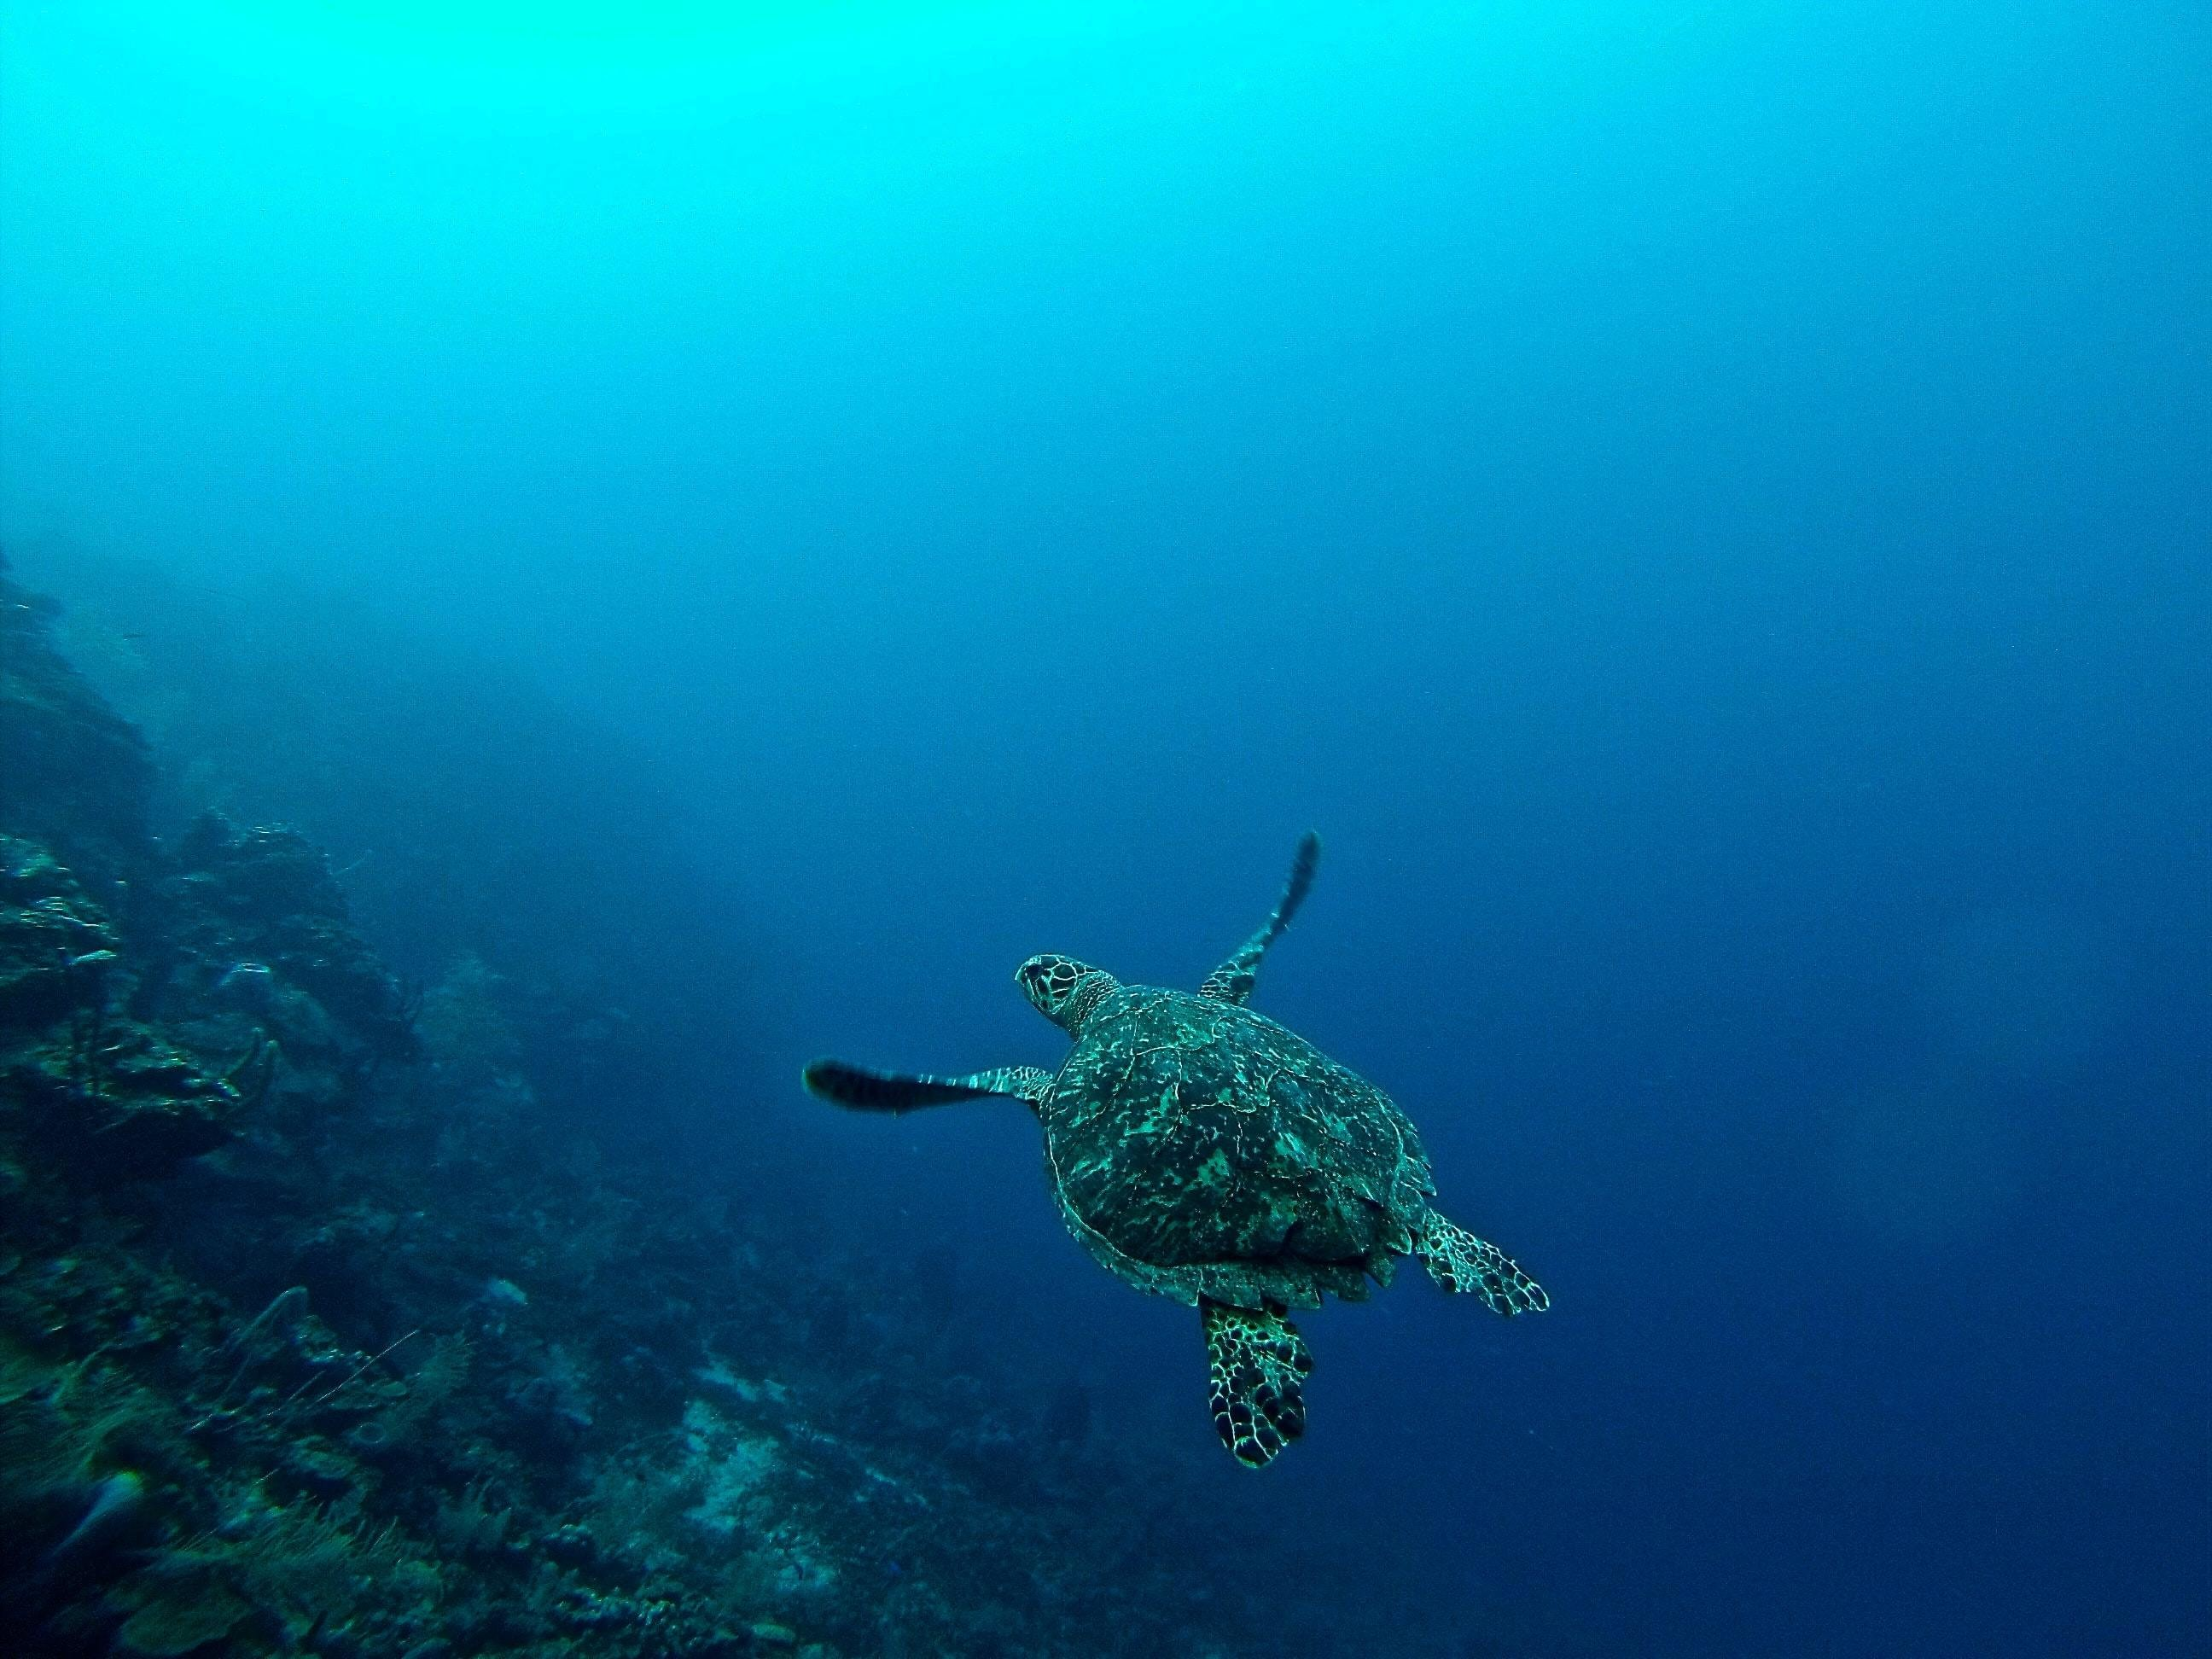 marine life such as this sea turtle are under serious threat from worsening problems affecting the ocean, like pollution and climate change